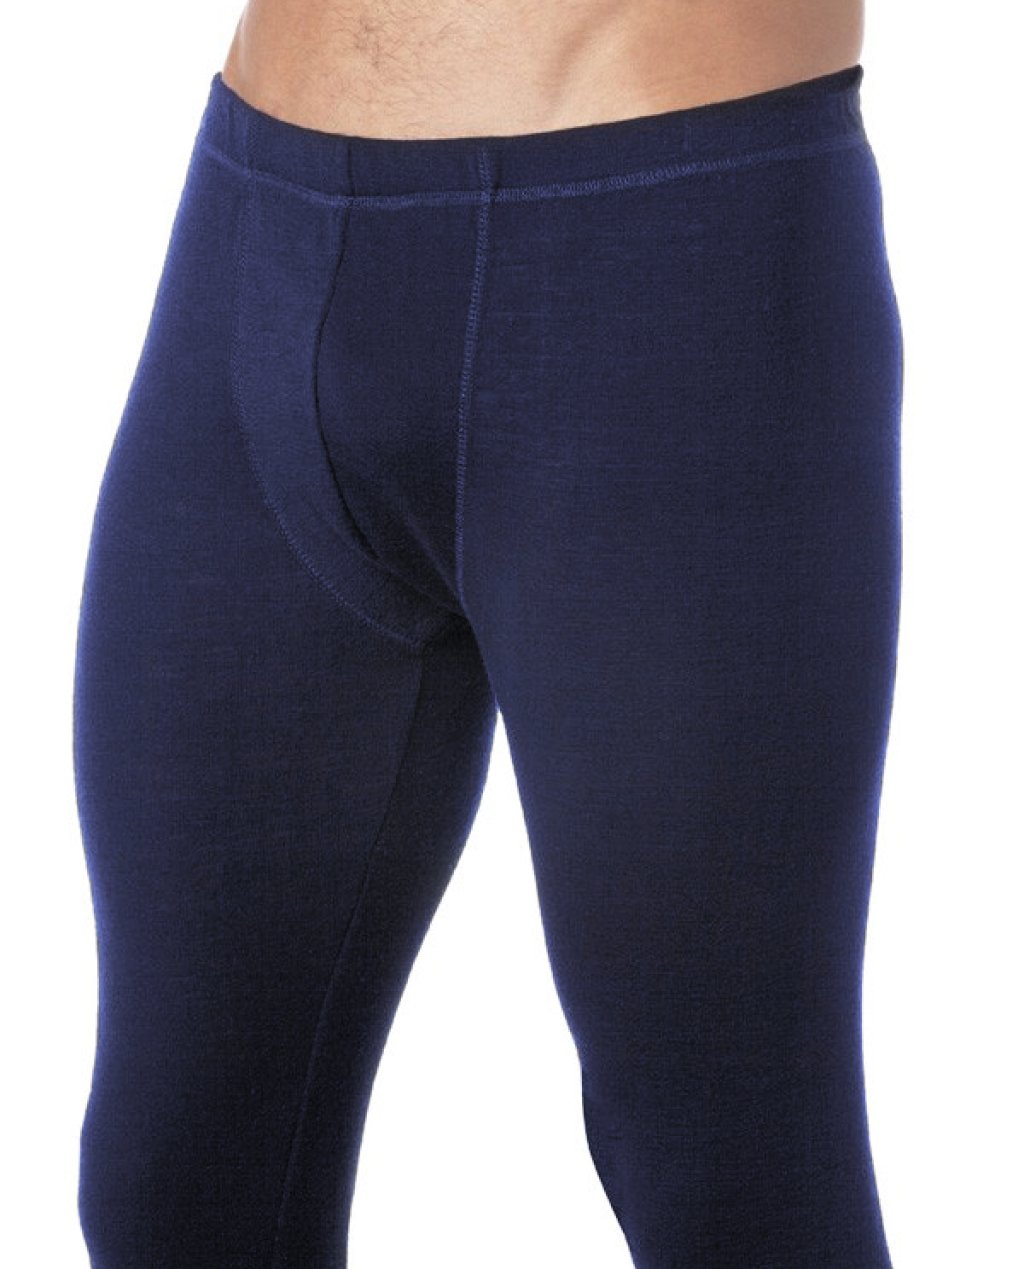 Thermal Underwear Mens Pure Merino Wool Long John Navy